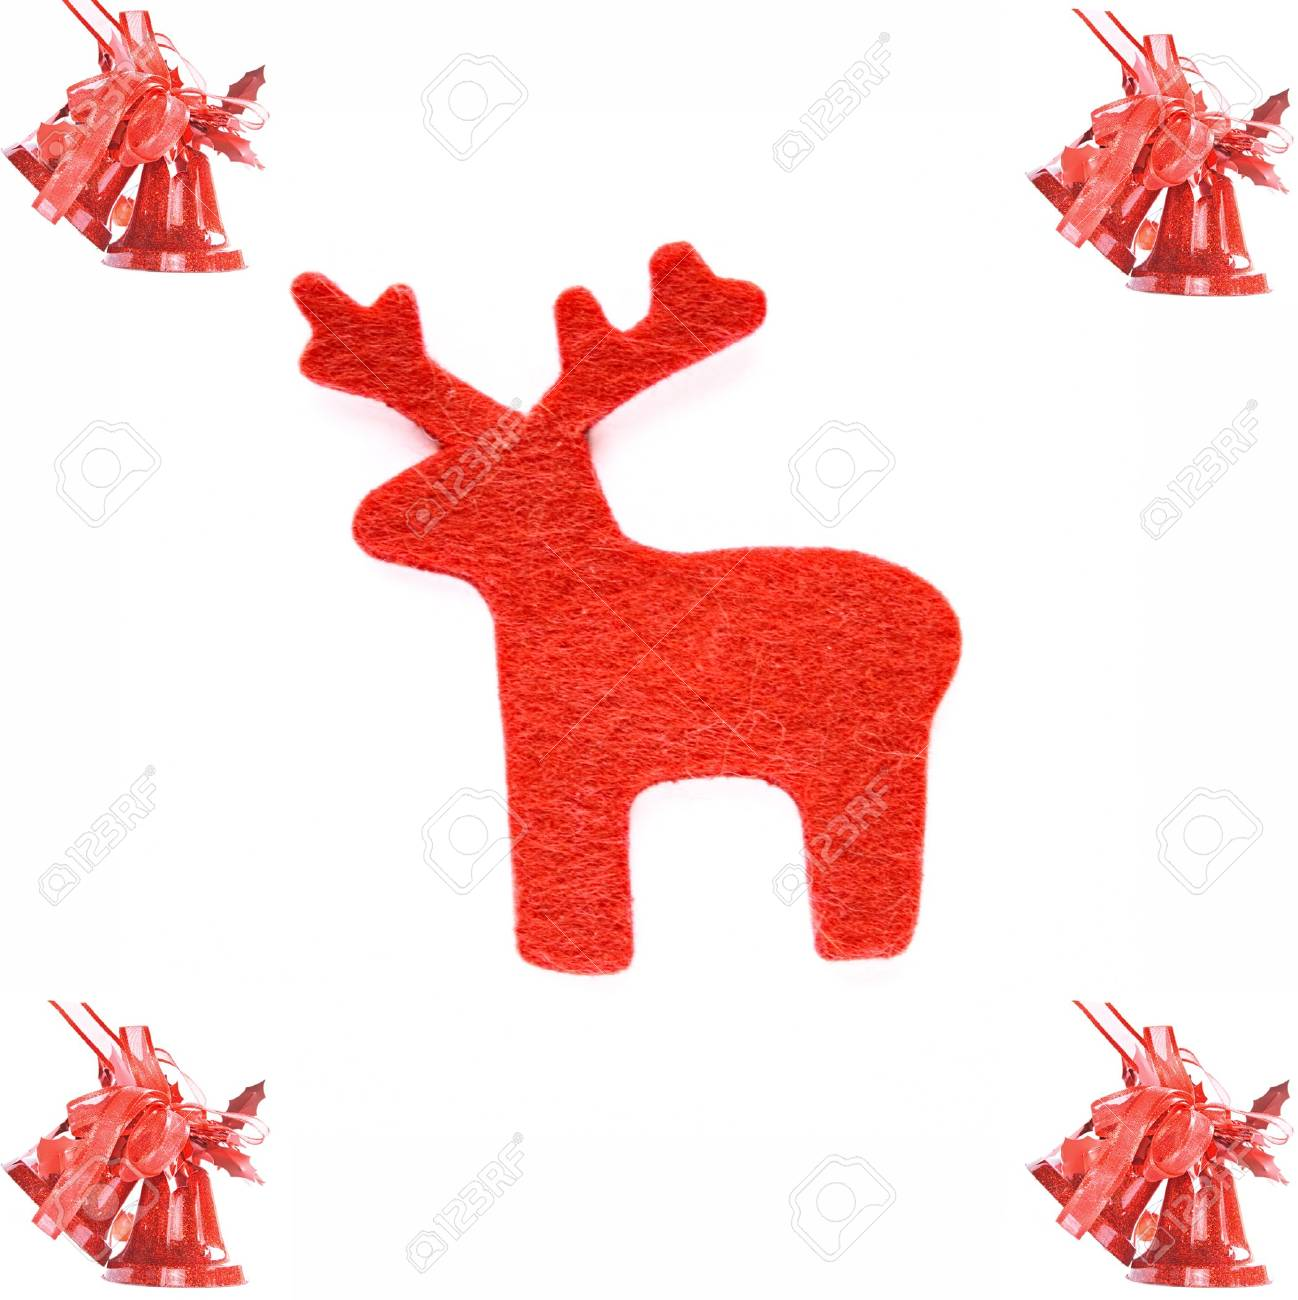 Reindeer and bell are isolated at the white background. Stock Photo - 6001080